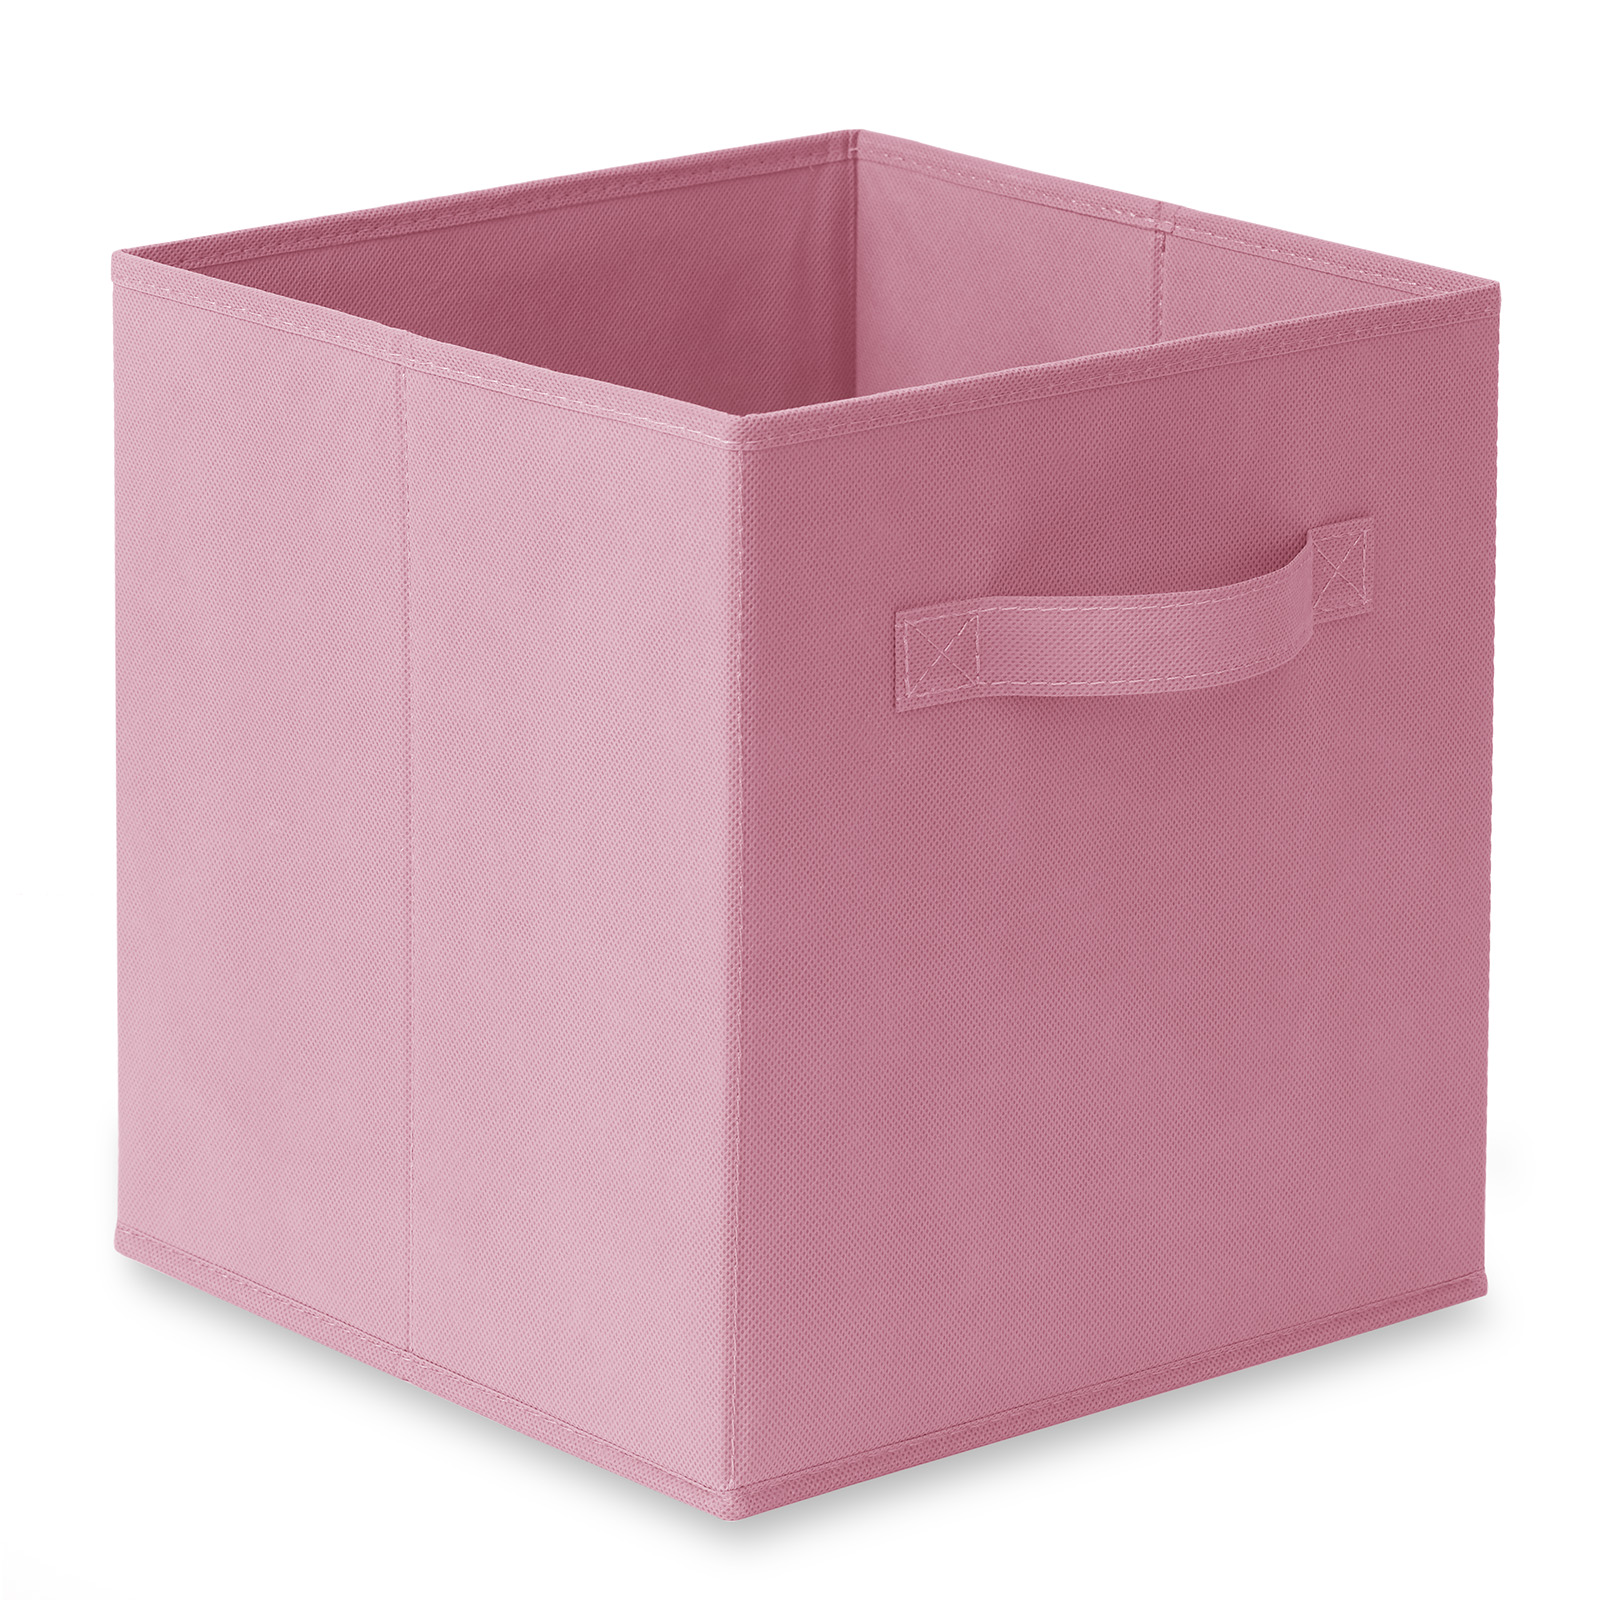 6-Collapsible-Foldable-Cloth-Fabric-Cubby-Cube-Storage-Bins-Baskets-for-Shelves thumbnail 36